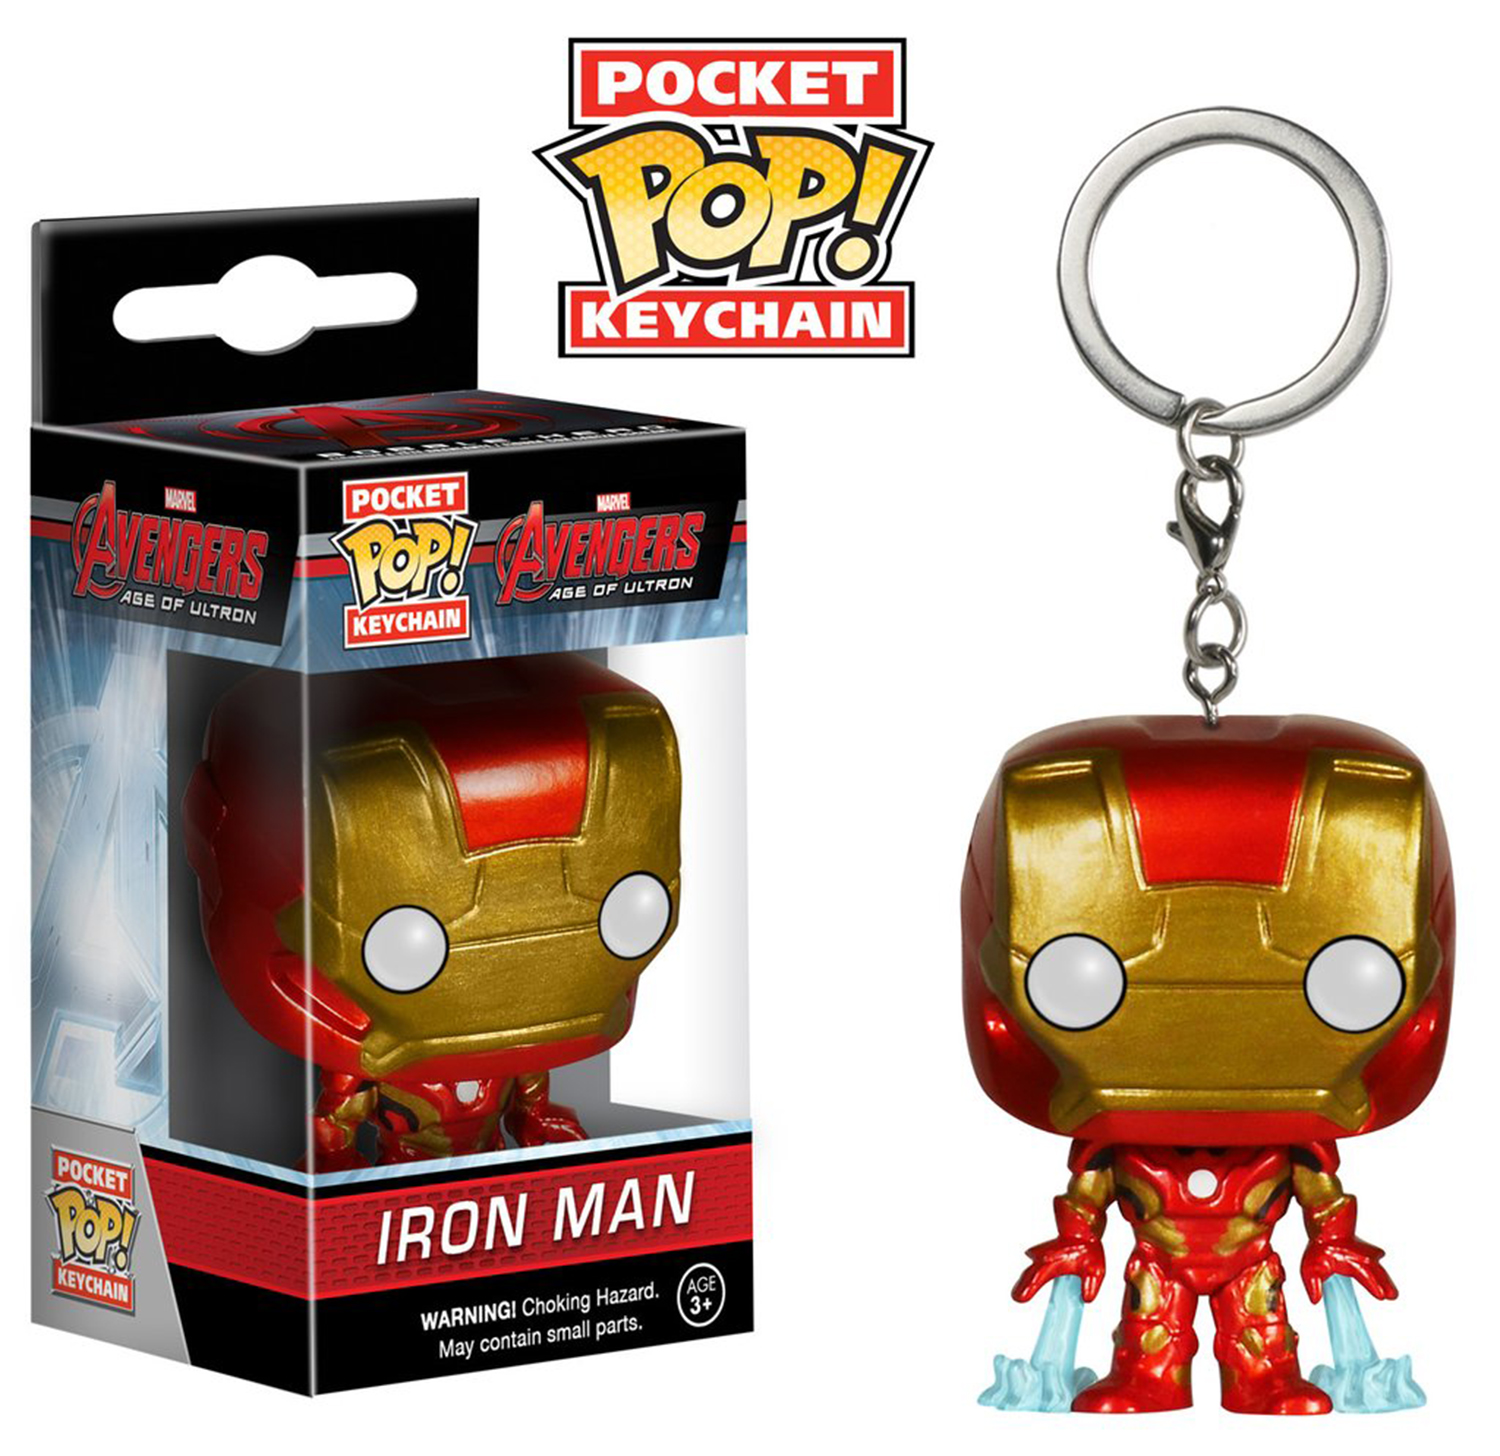 Collectible Toy Funko Avengers Age of Ultron Iron Man Pocket Pop! Key Chain (Multipack of 6)